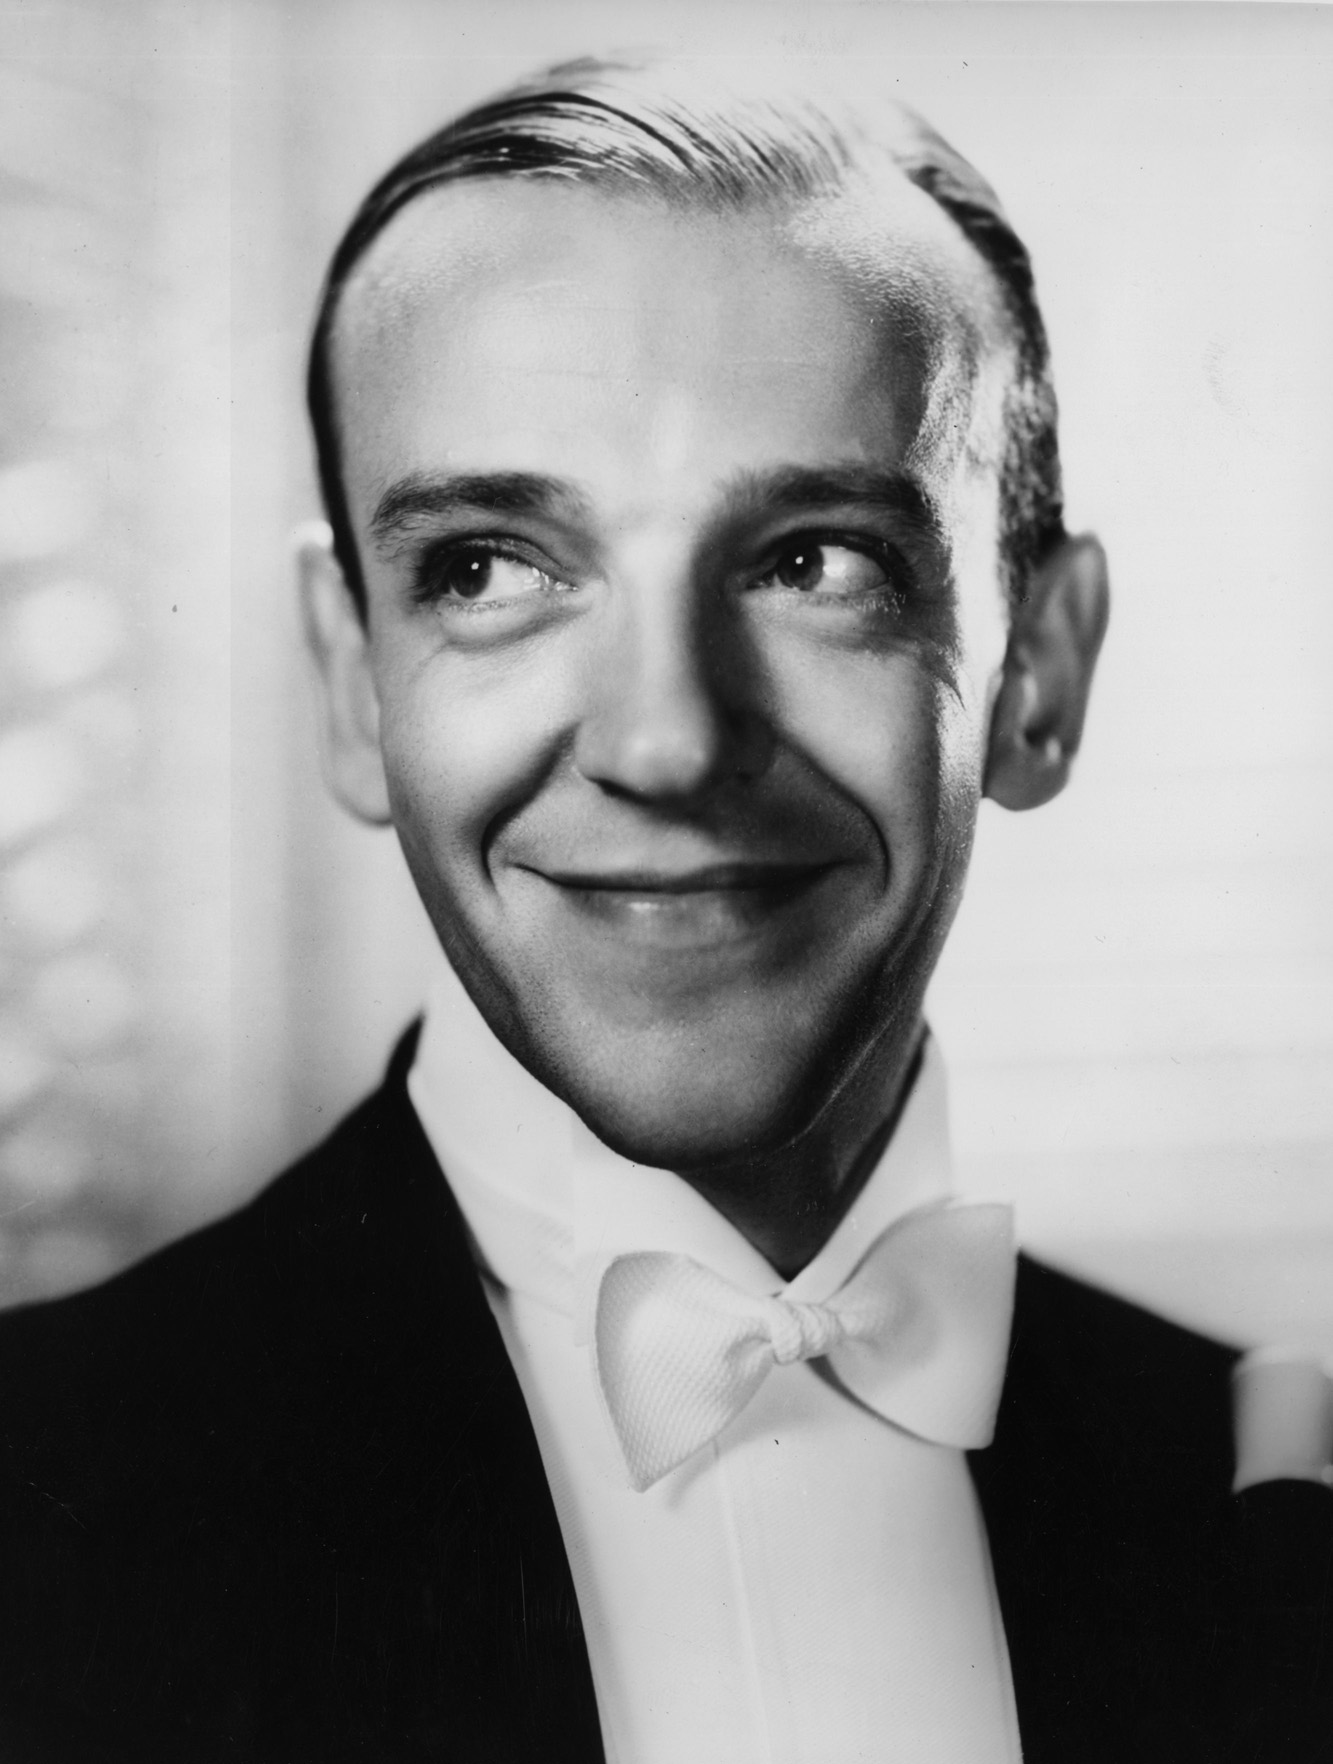 Smiling Astaire fine art photography